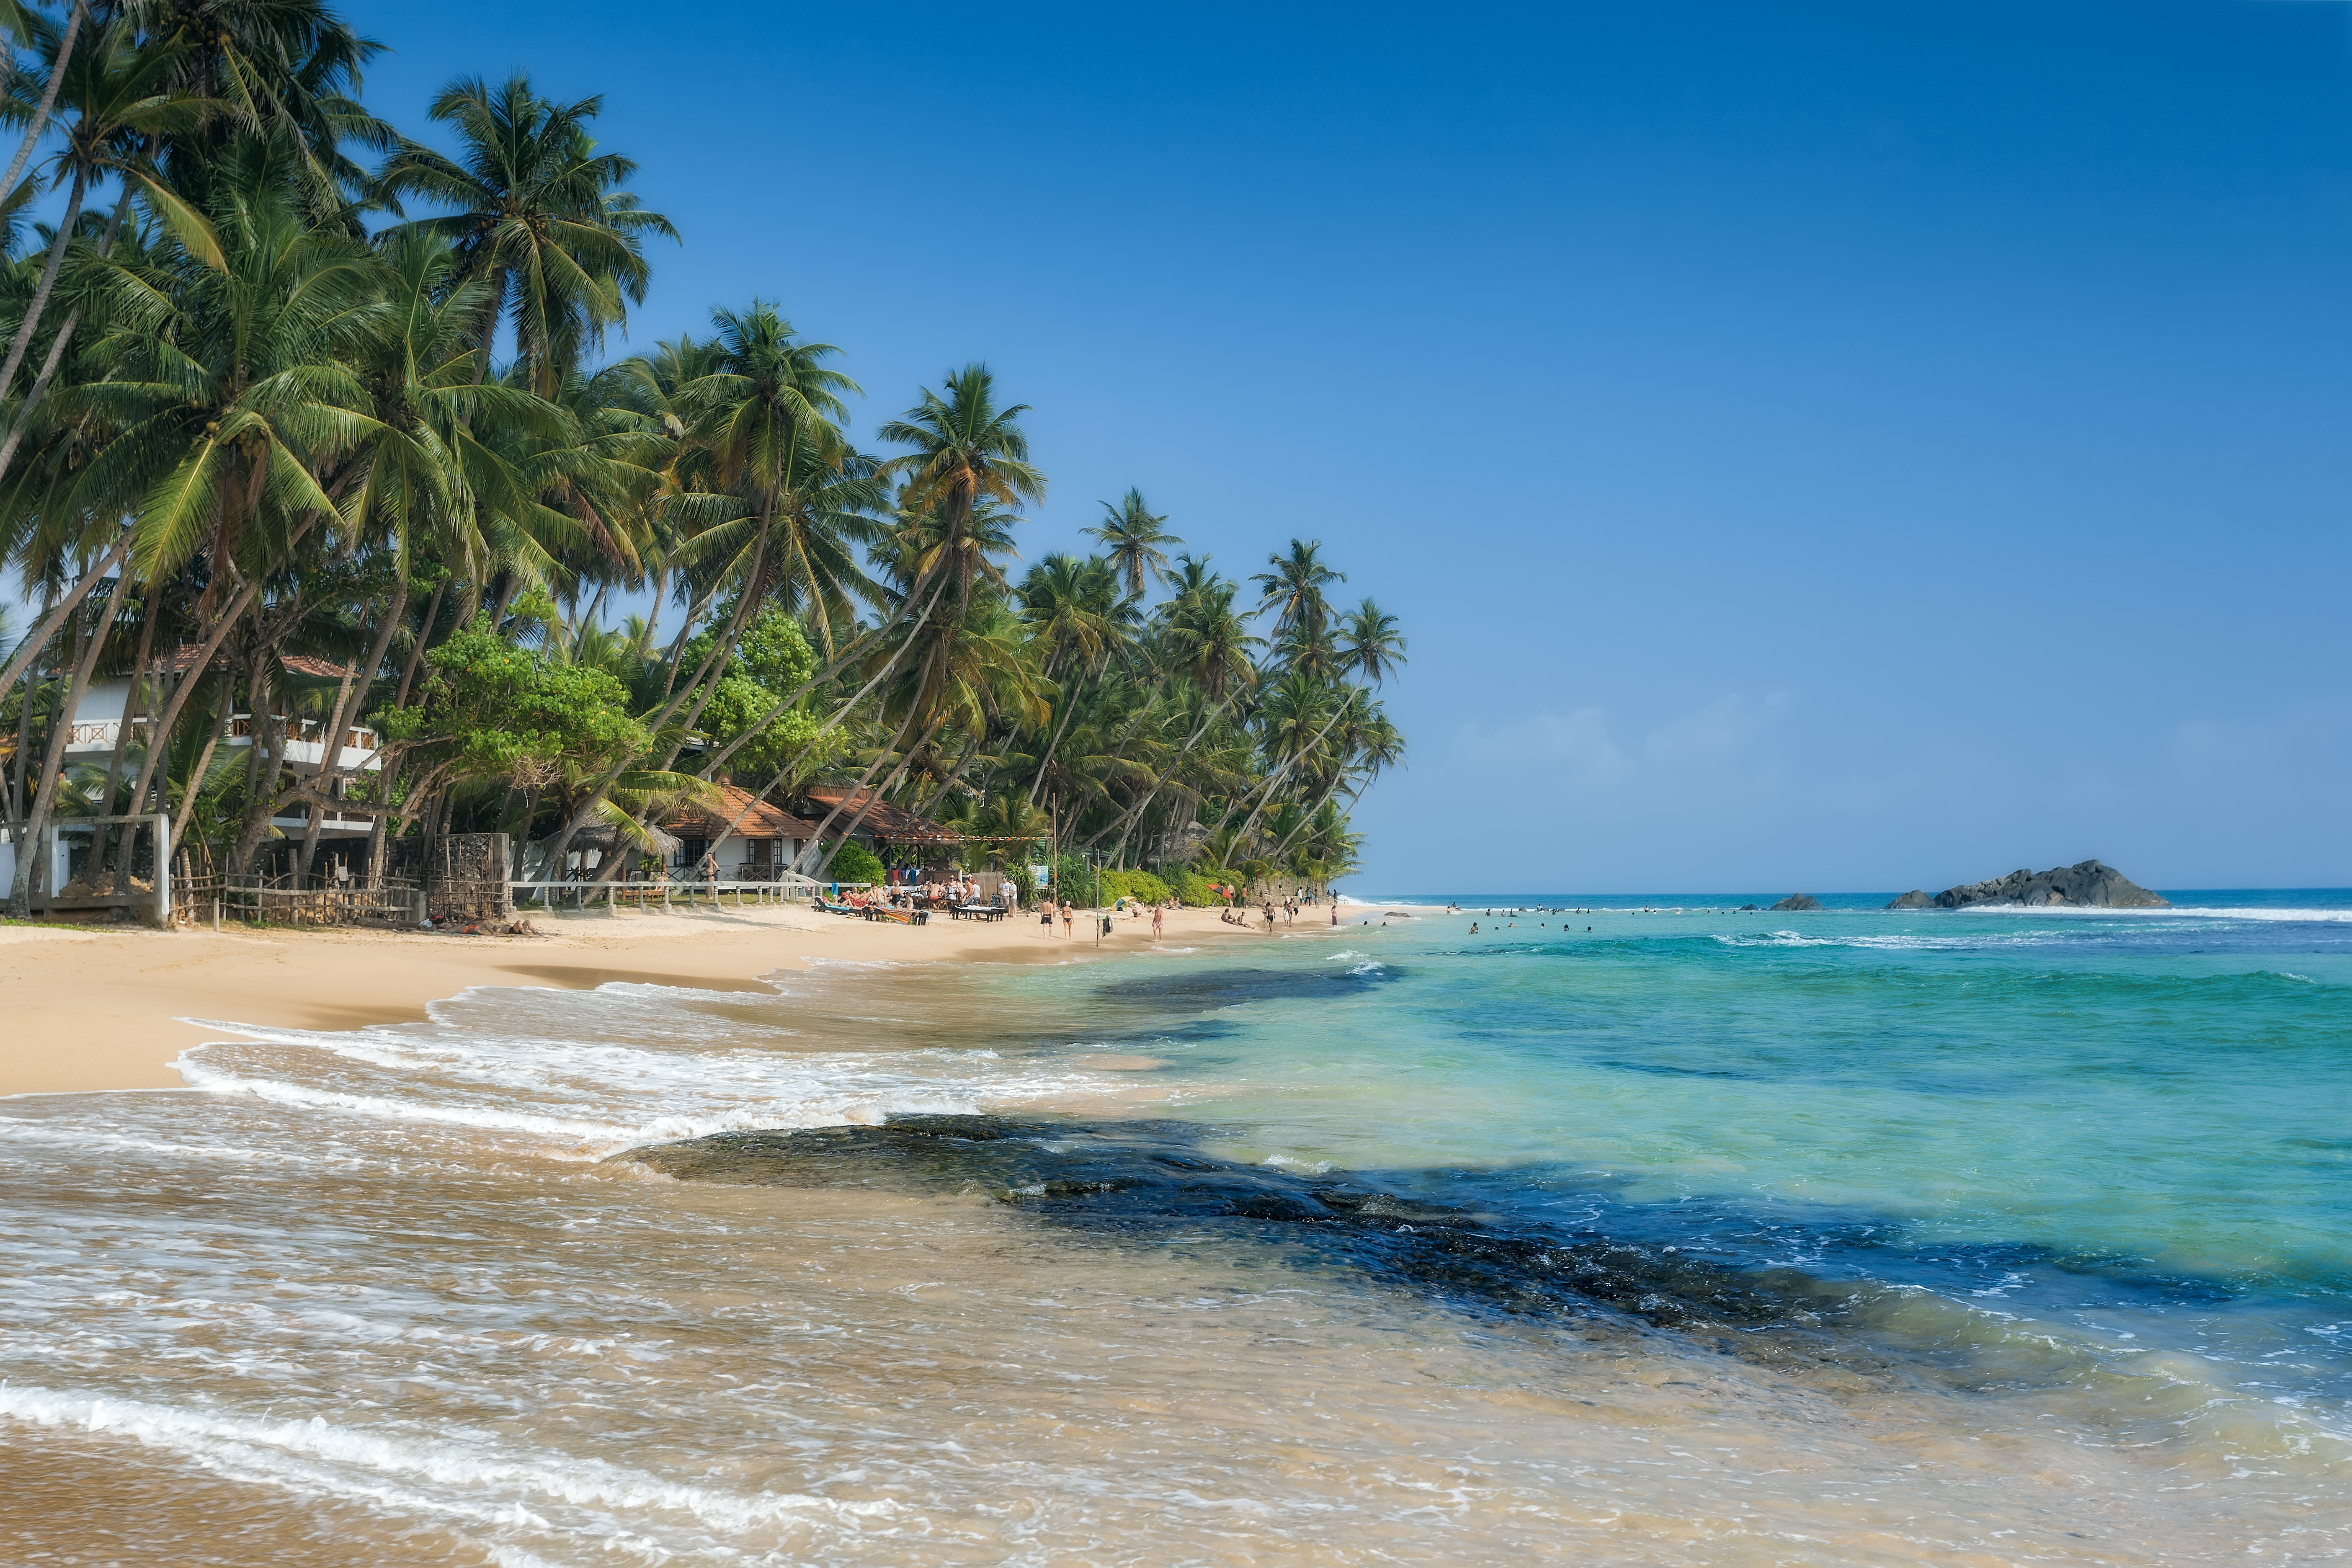 Now You Know More About The Sri Lankan Beaches All Need To Do Is Choose A Good Hotel In Lanka And For That Don T Forget Look Through